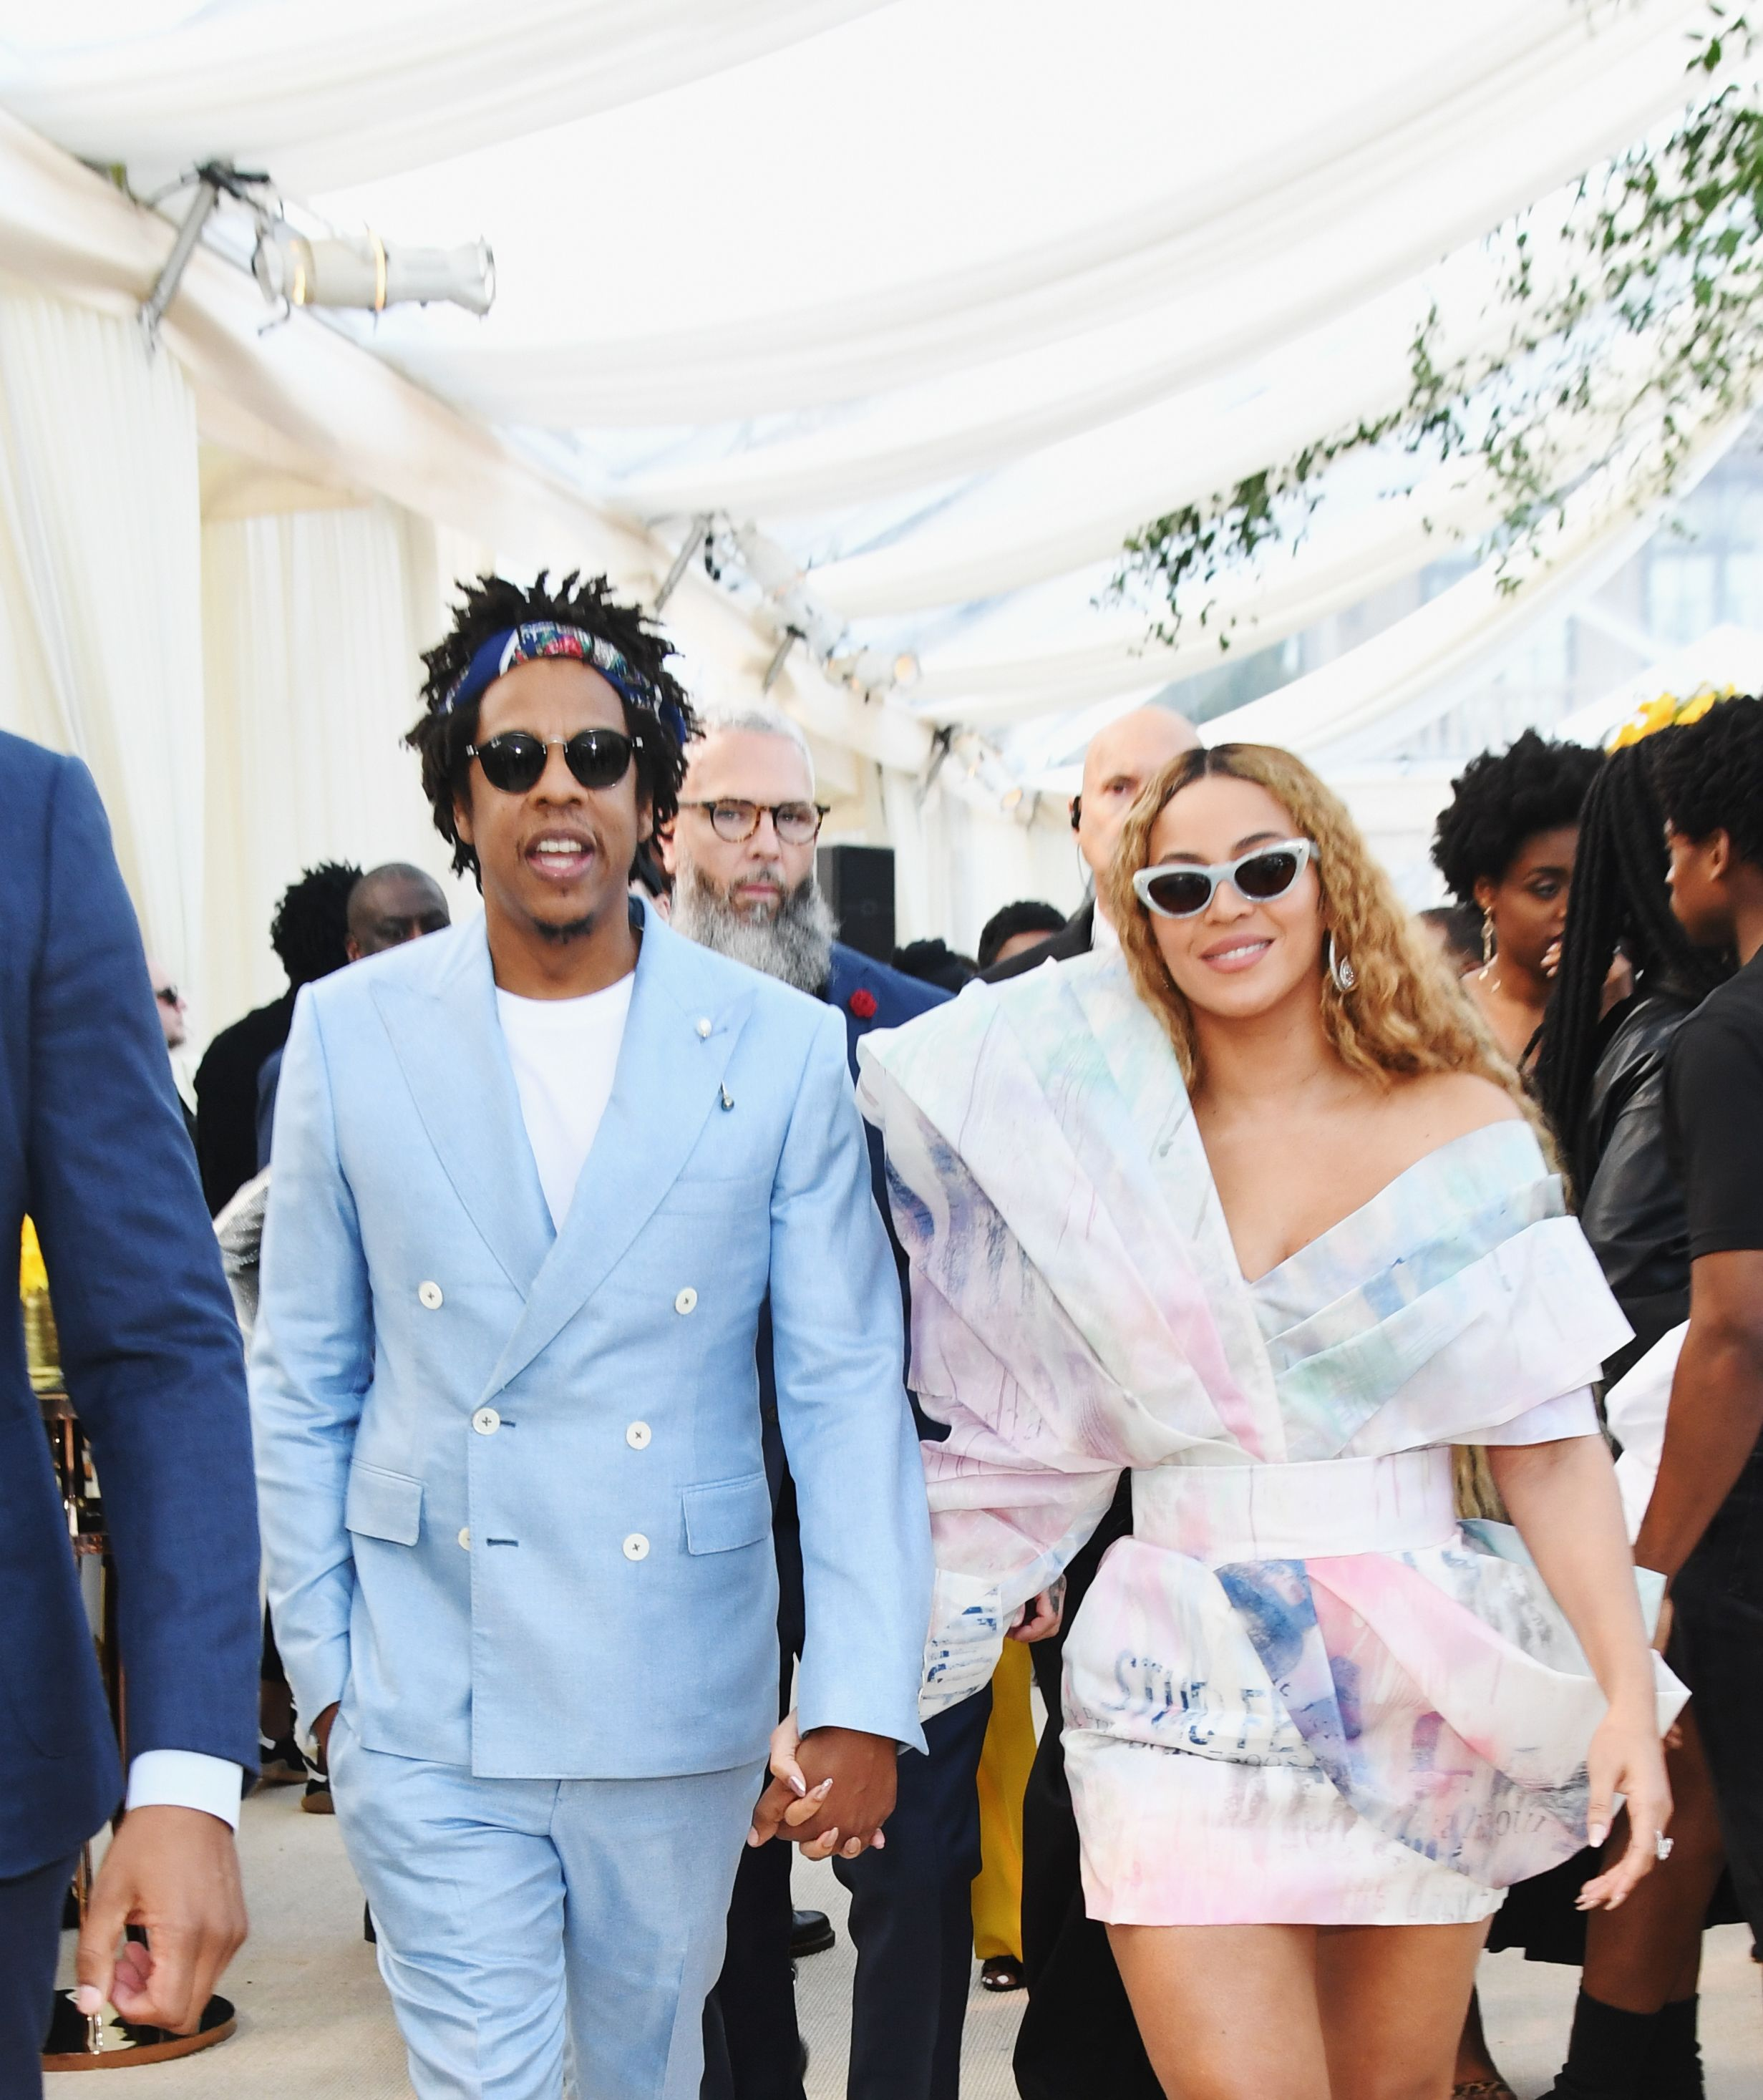 Jay-Z and Beyonce in pastel outfits